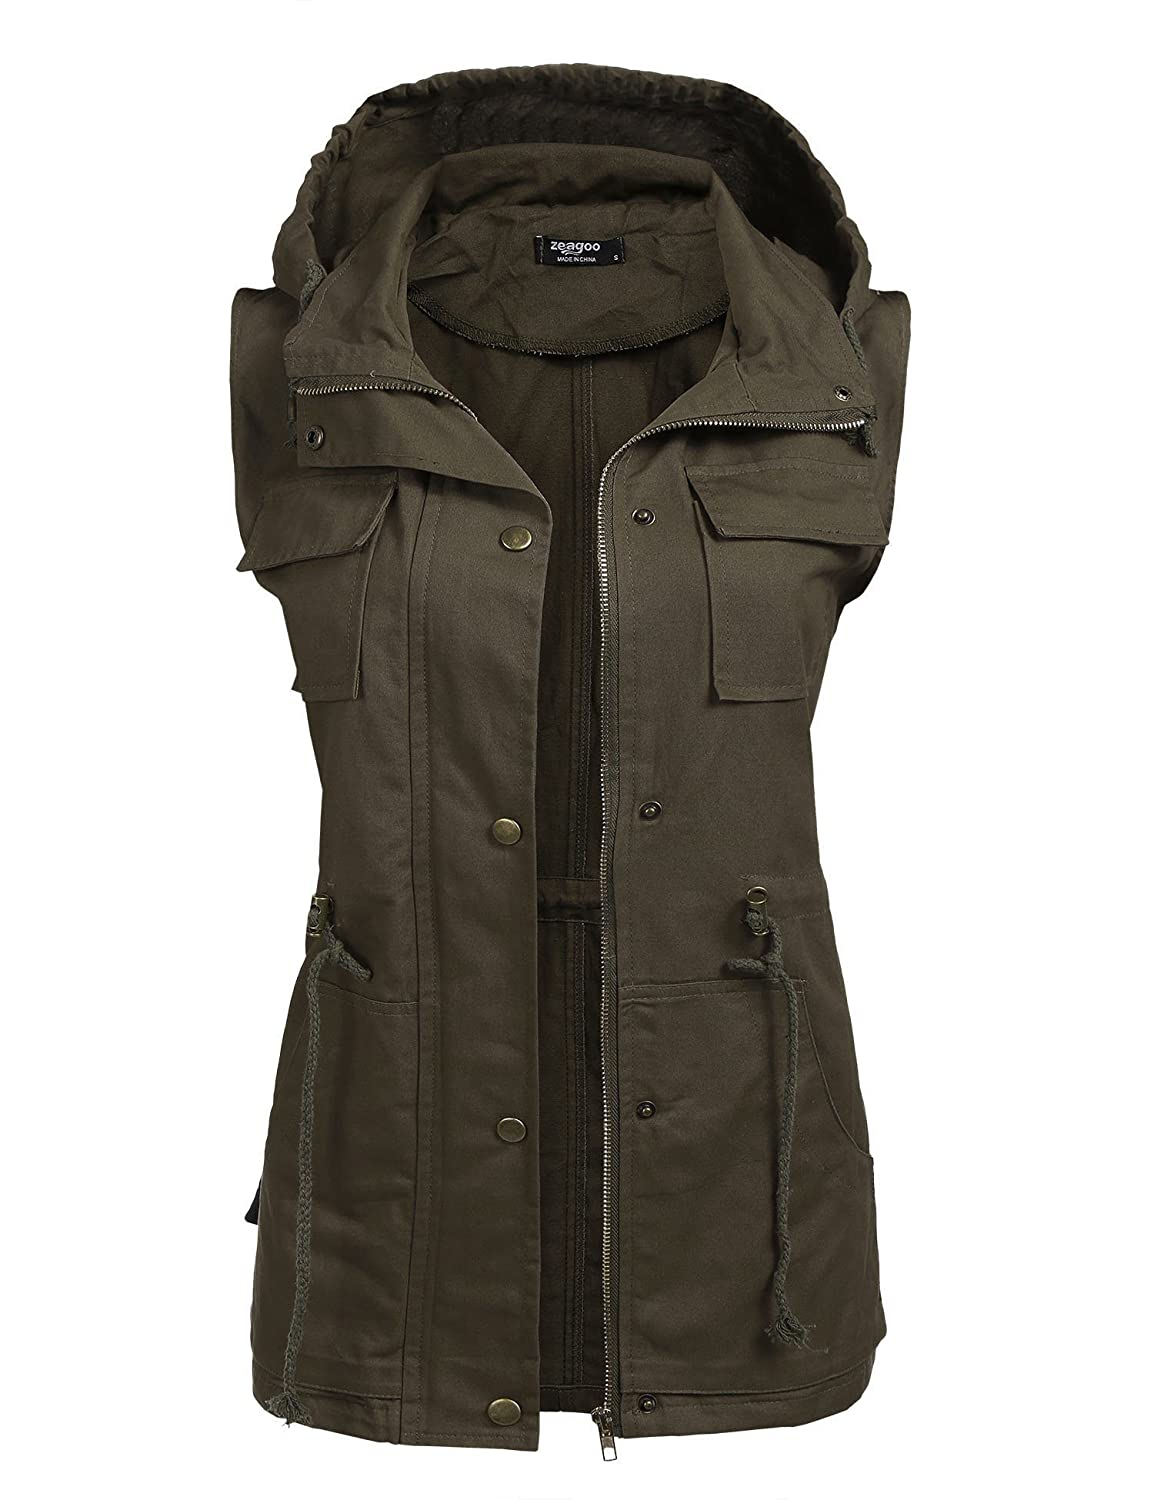 Beyove Womens Lightweight Sleeveless Military Anorak Vest **BVH005702